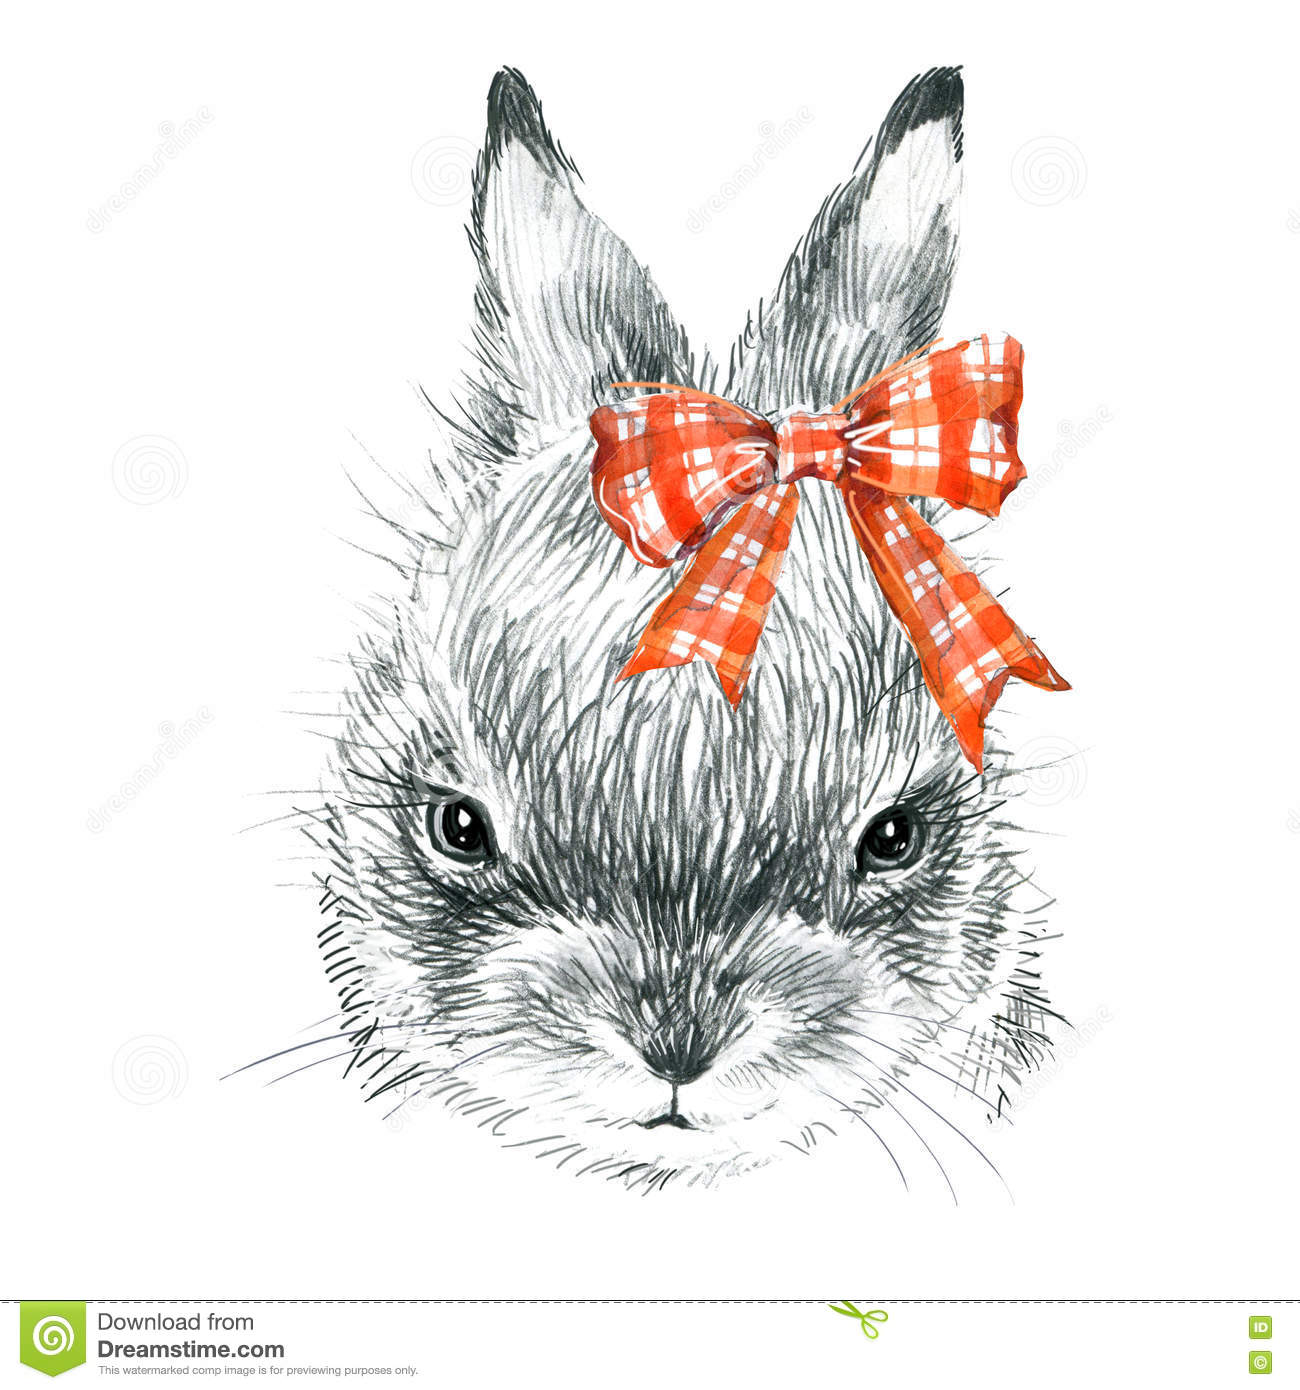 Rabbit pencil sketch illustration t shirt print with cute bunny poster for kid greeting card